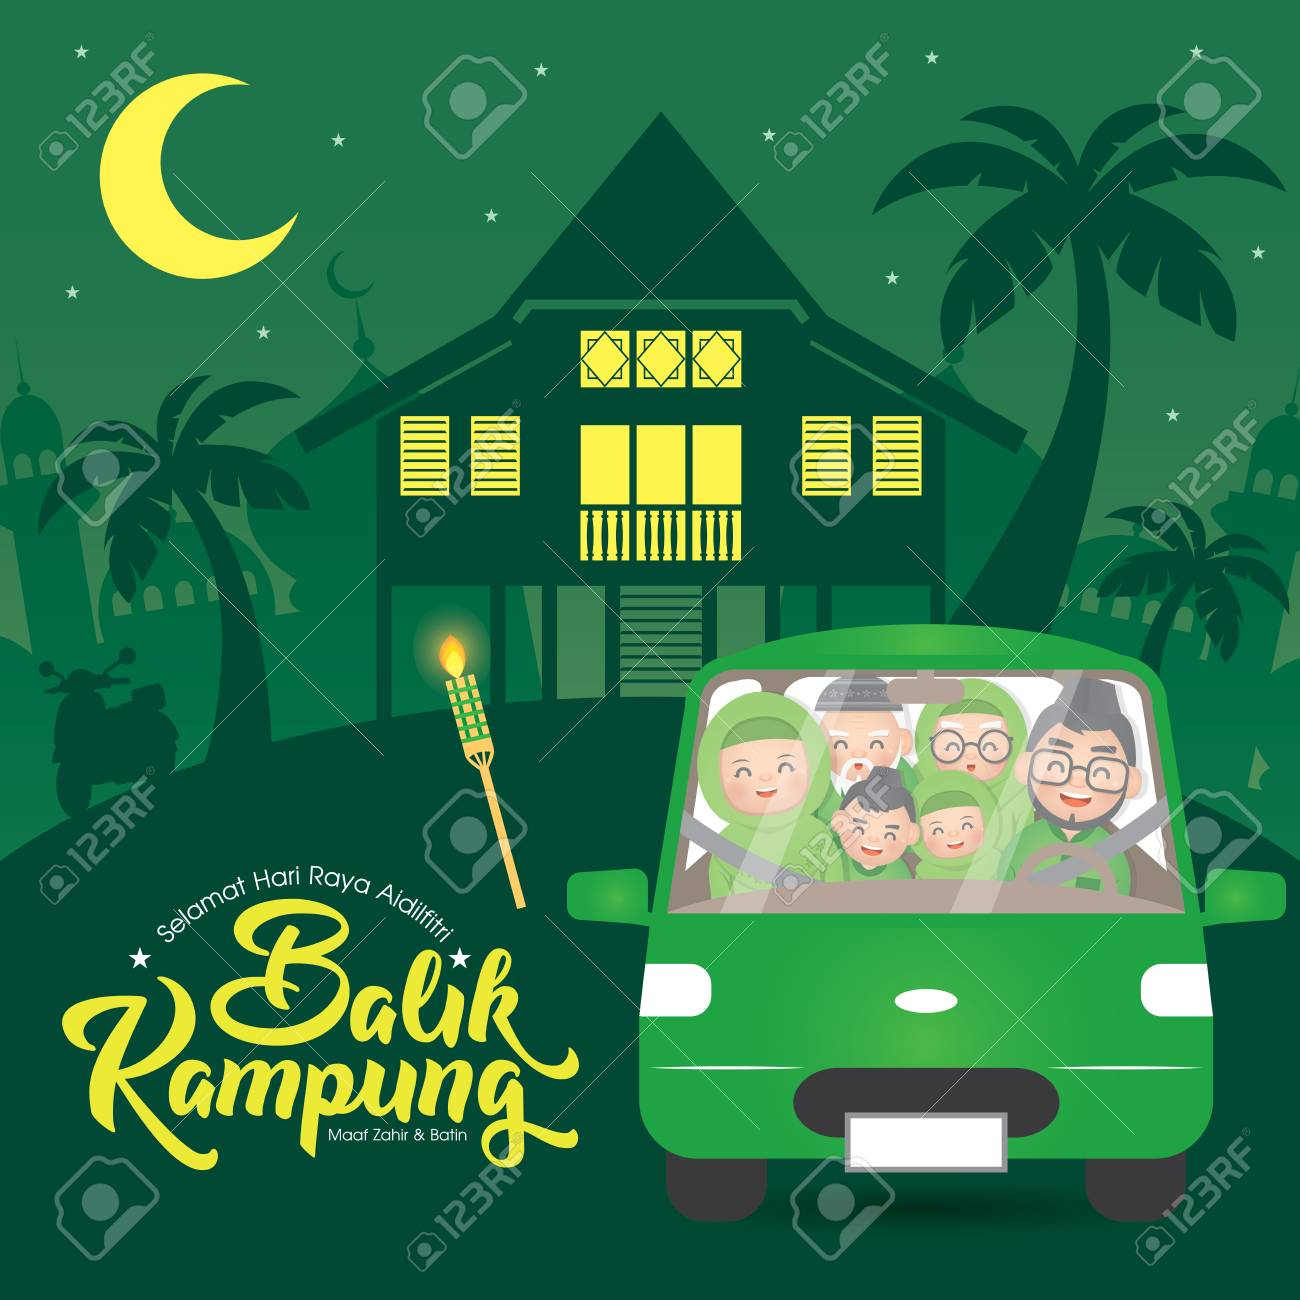 Hari Raya Aidilfitri & Balik Kampung is an important religious holiday celebrated by Muslims worldwide that marks the end of Ramadan, also known as Eid al-Fitr. (Translation: Return Home Reunion ) - 122196438